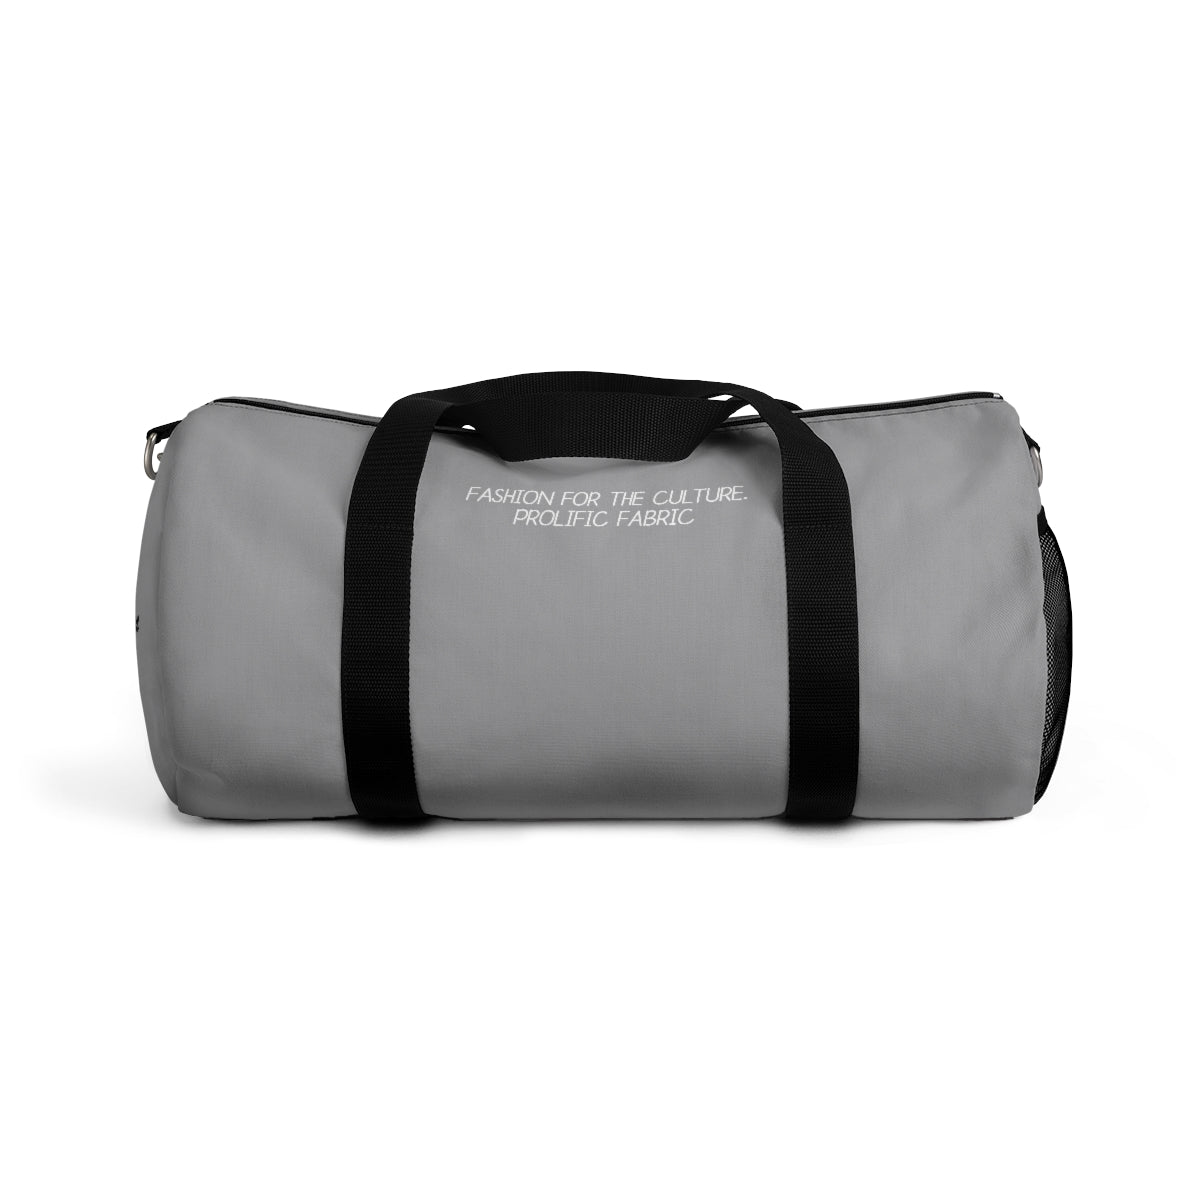 GRADUATION DUFFLE